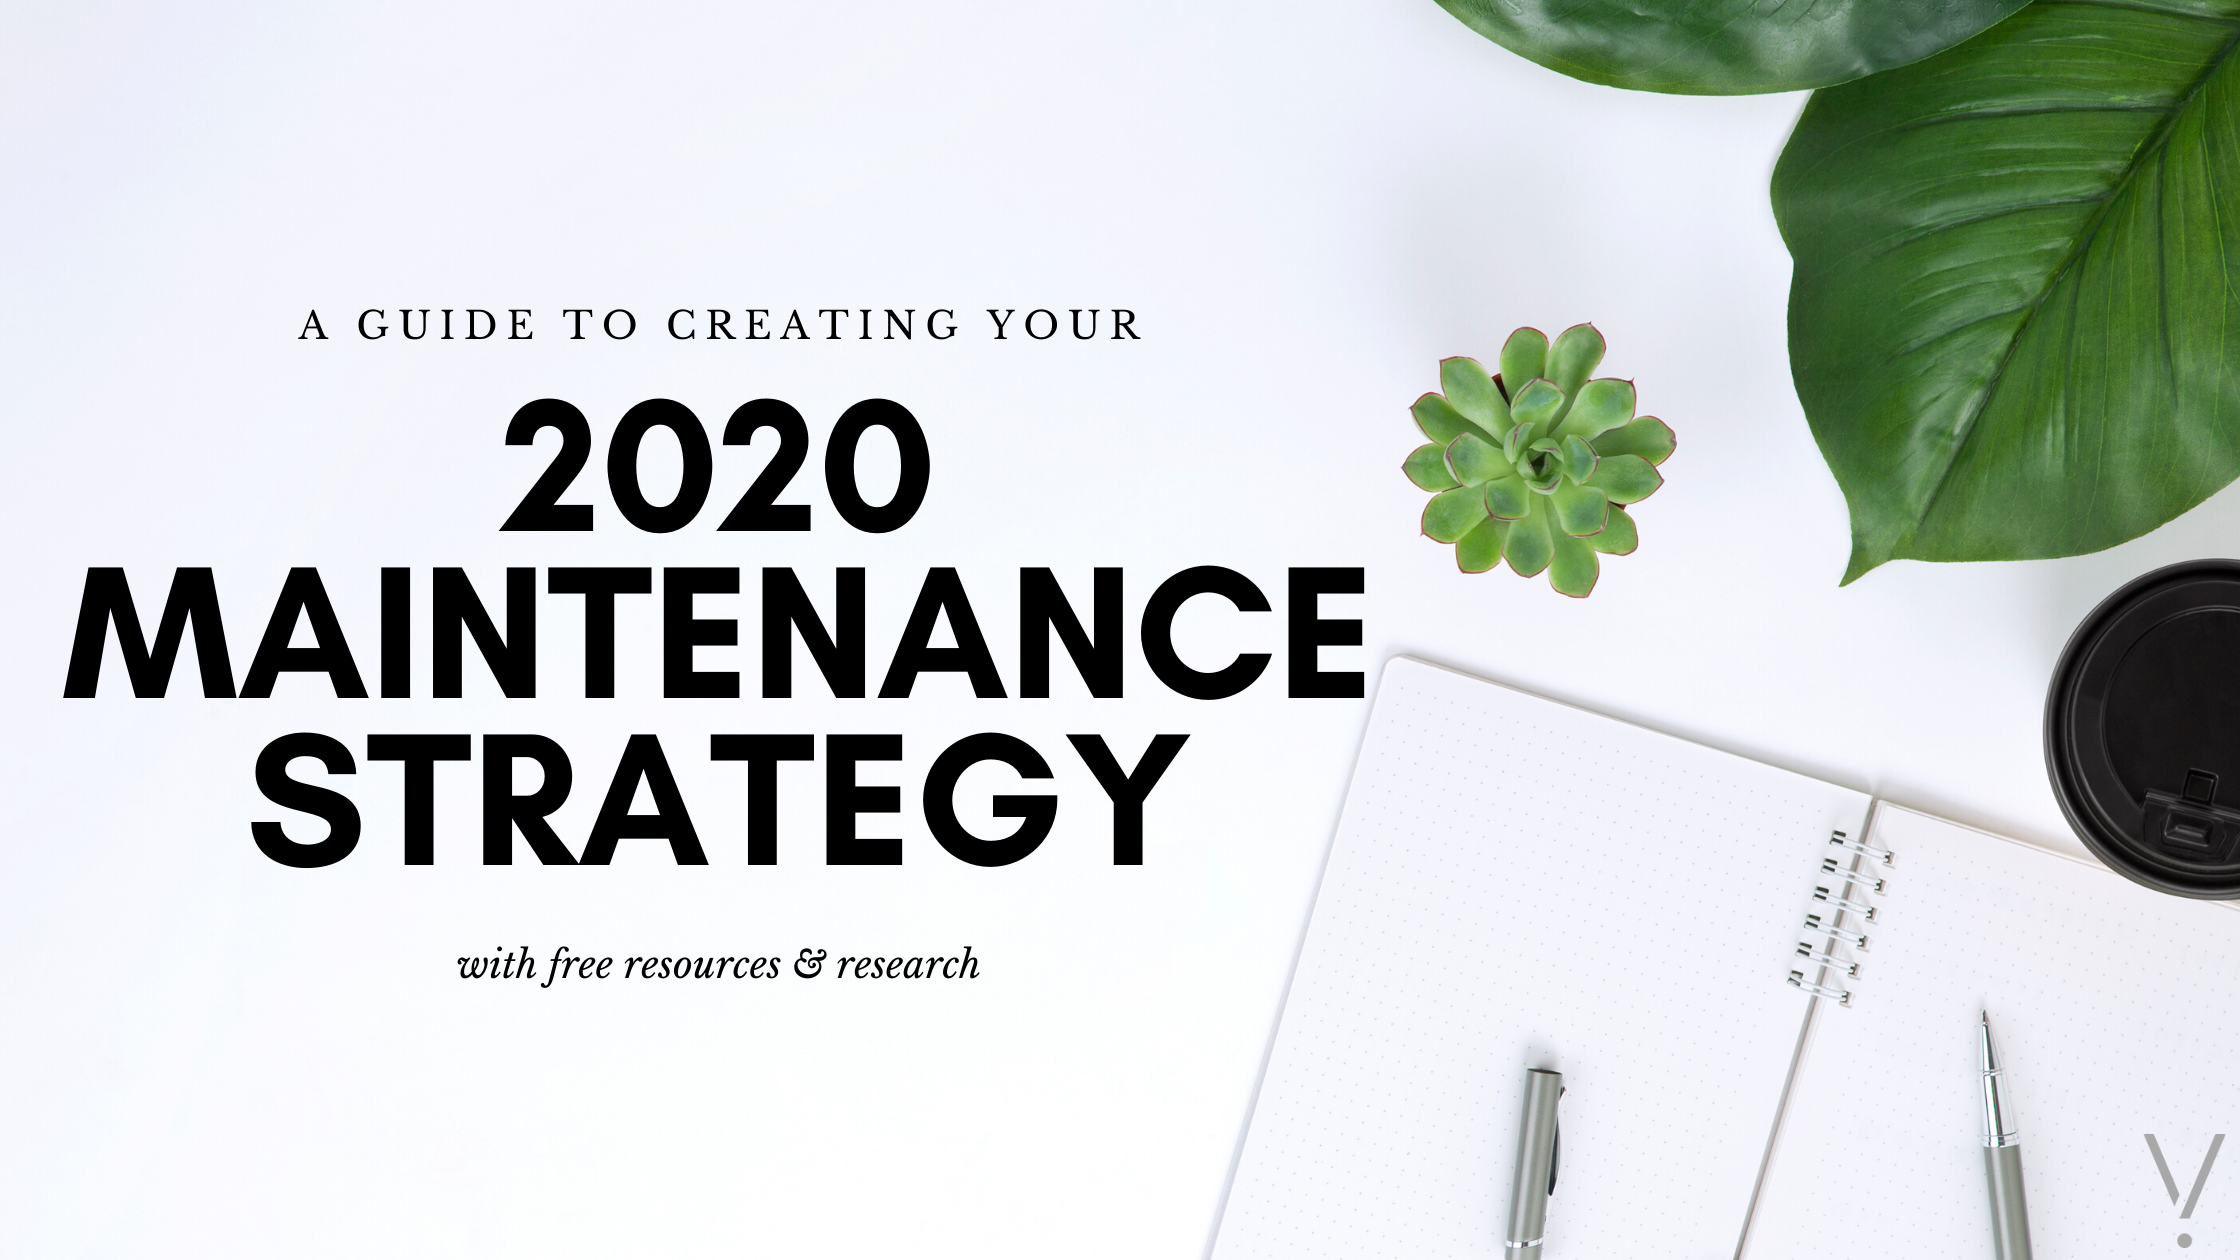 A Guide to Creating a Valuable IT Maintenance Strategy in 2020